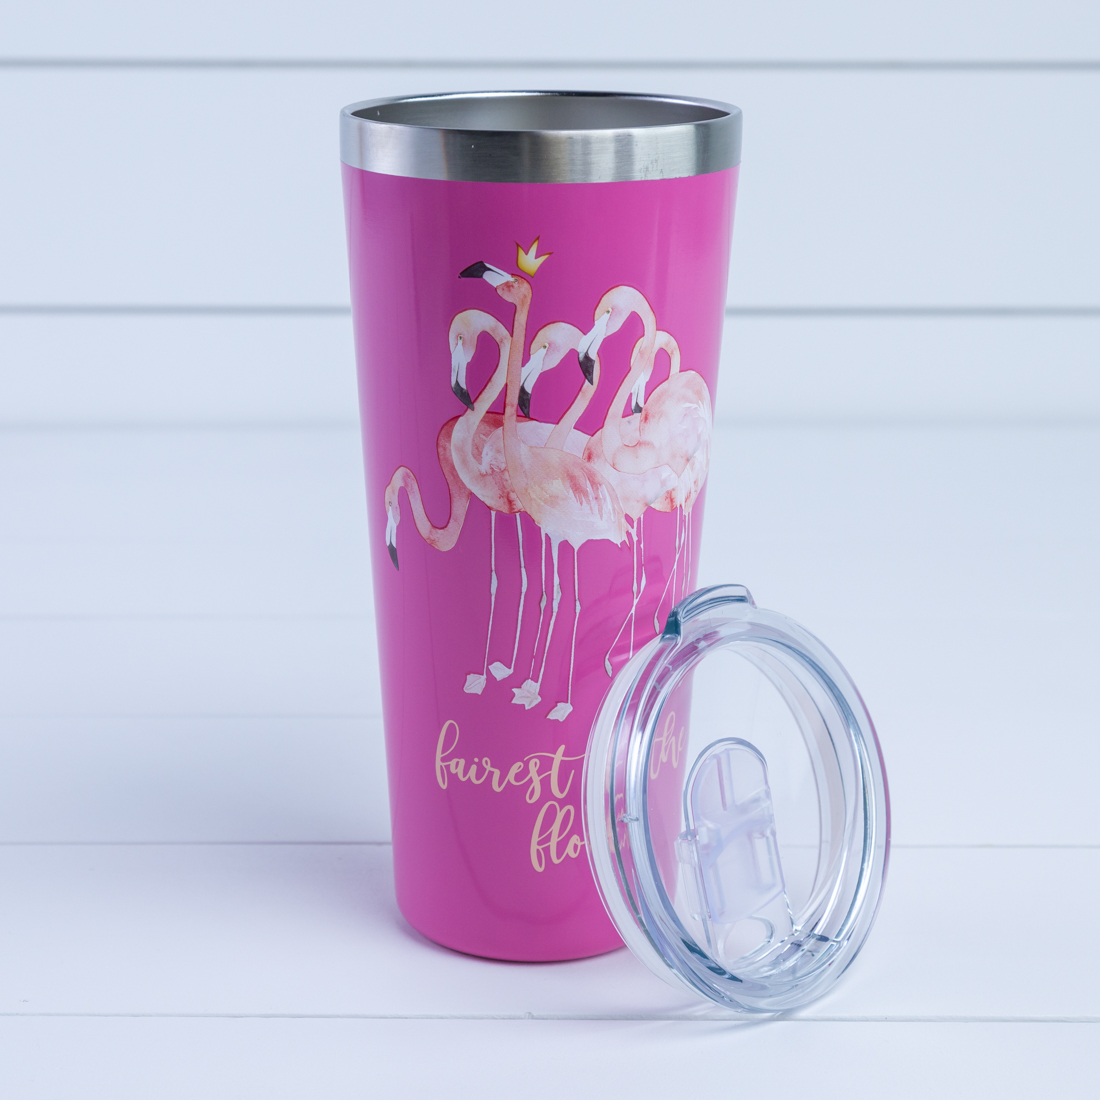 Fairest of the Flock 32oz Tumbler